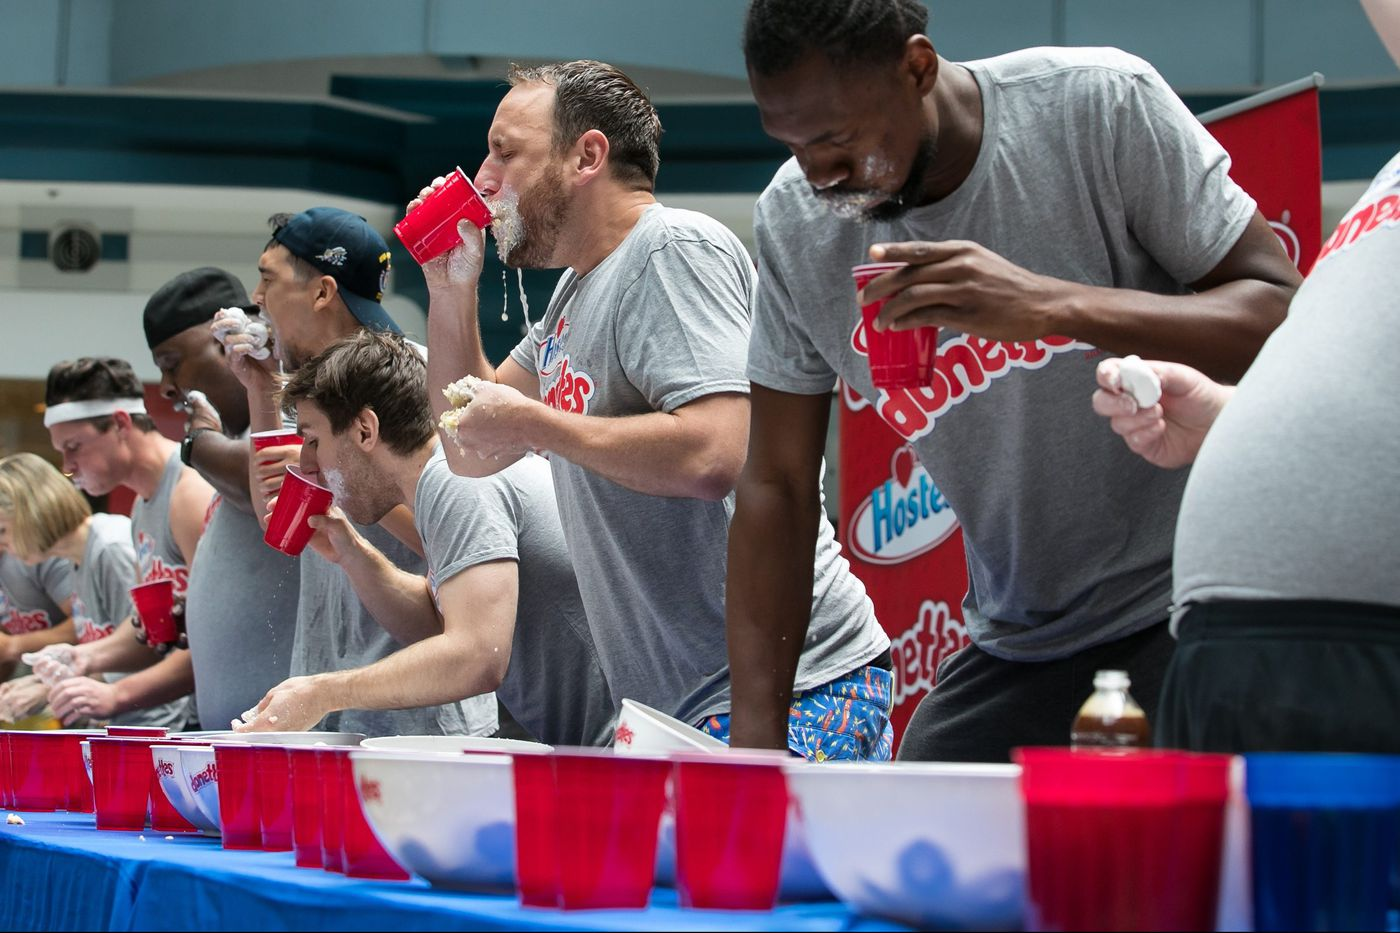 257 doughnuts devoured by Joey Chestnut, world's No. 1 ranked competitive eater, in Center City